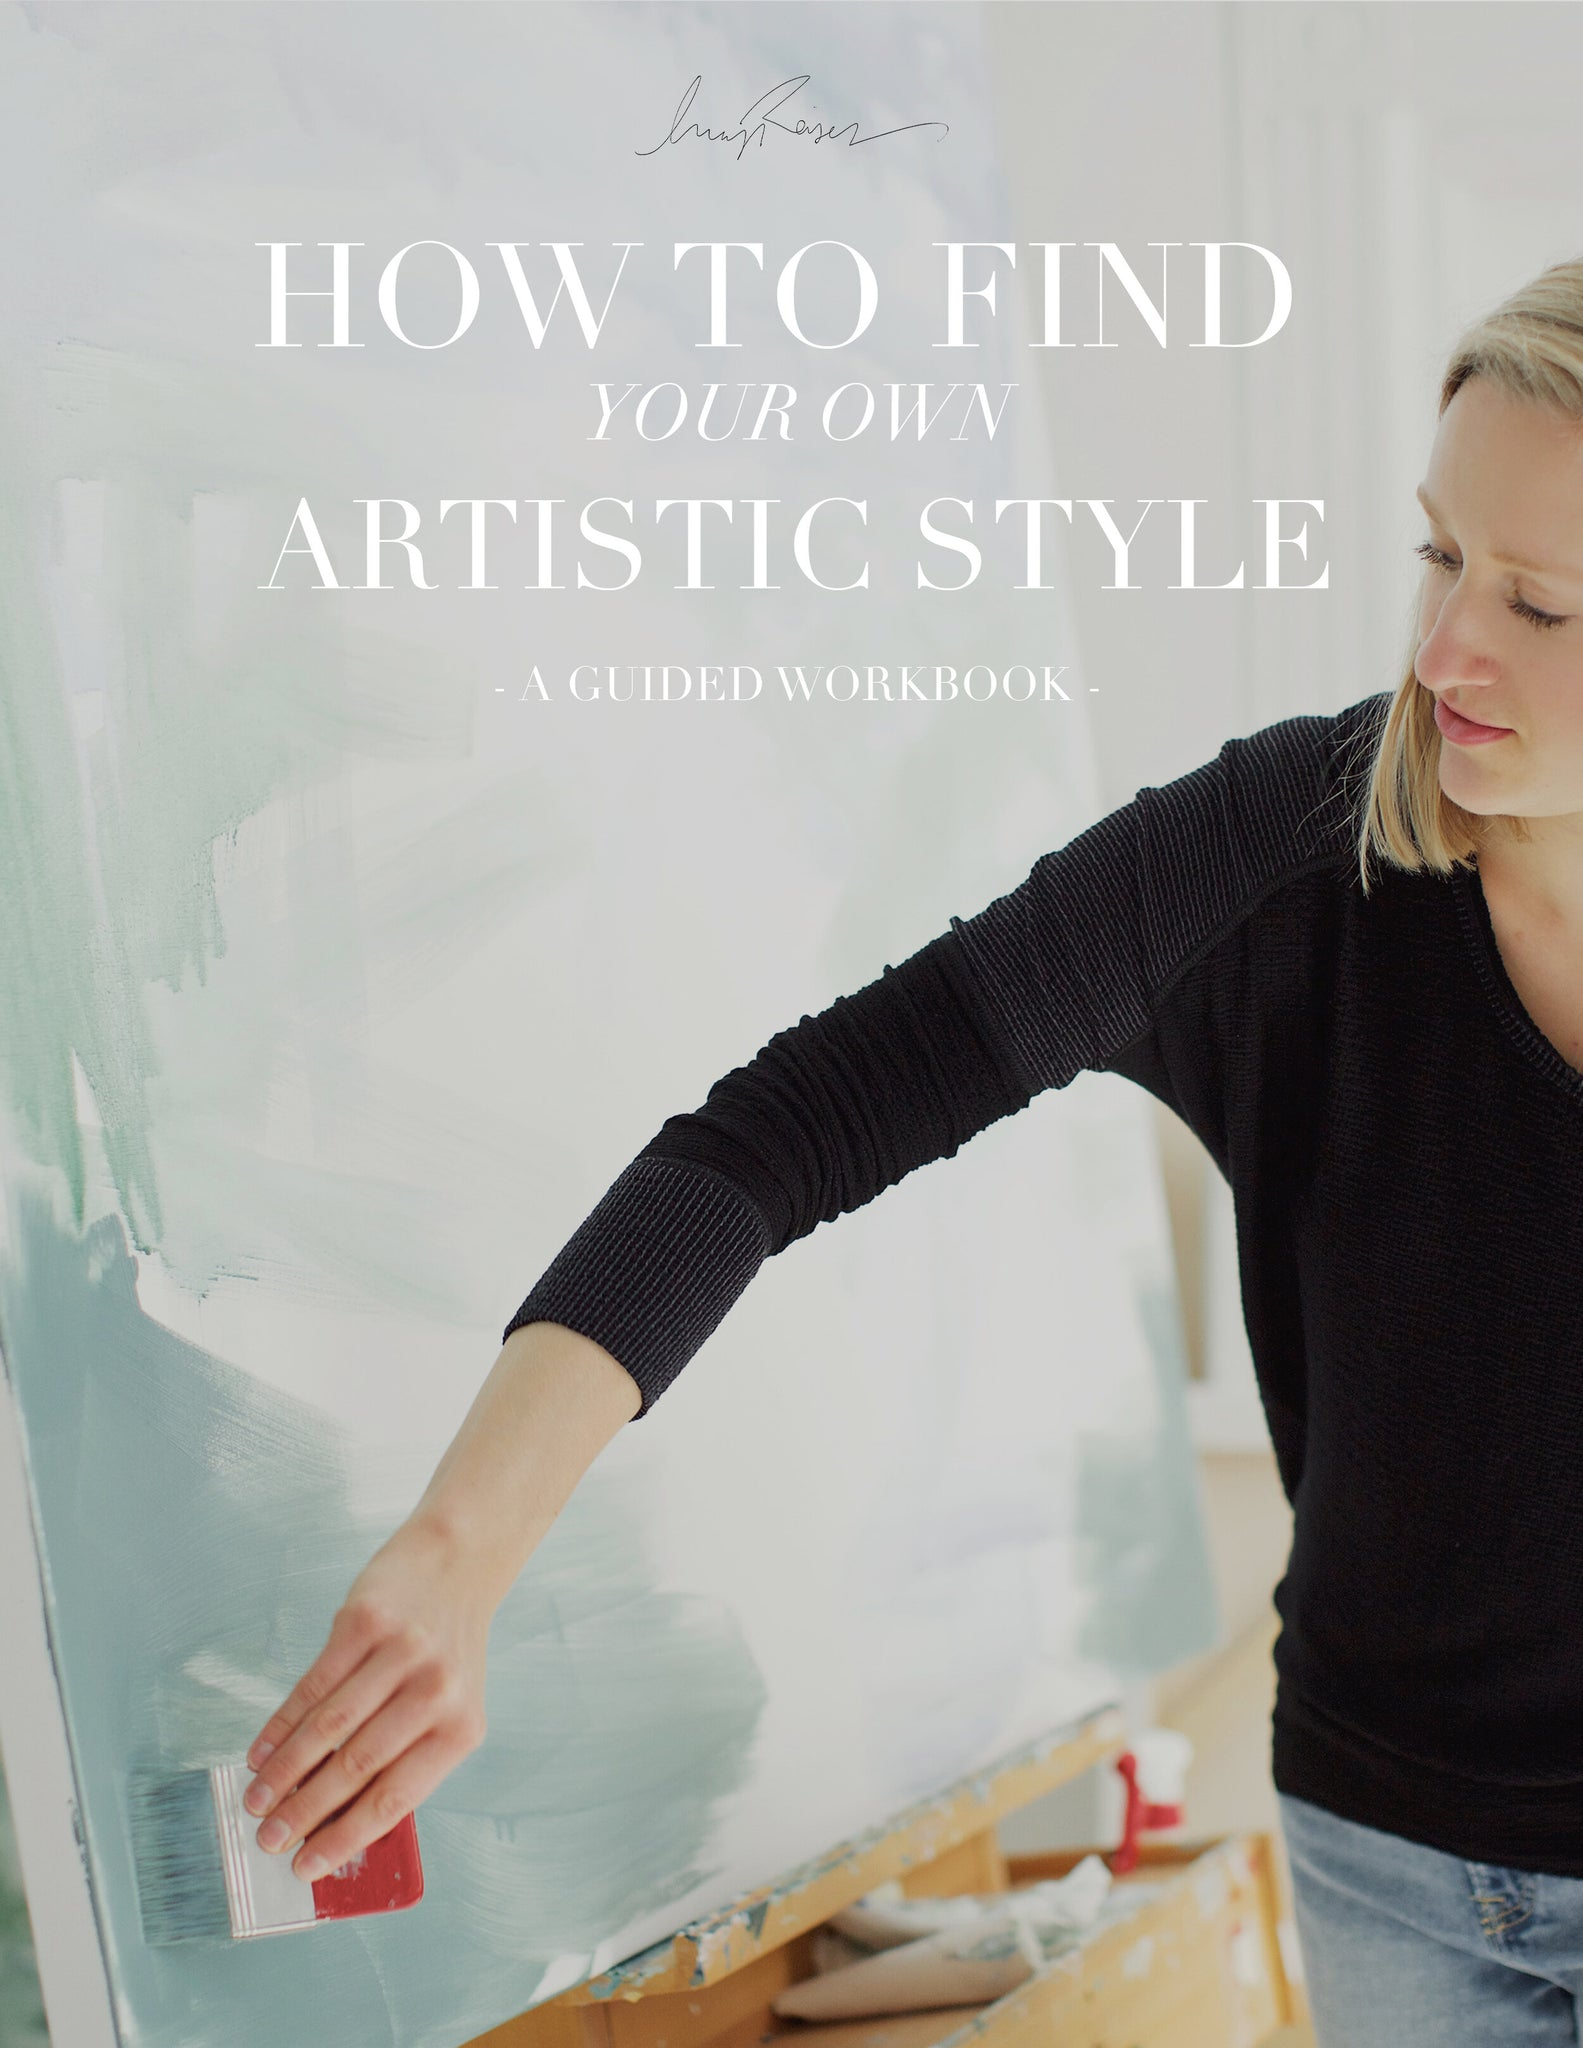 How to find your own artistic style guided workbook cover